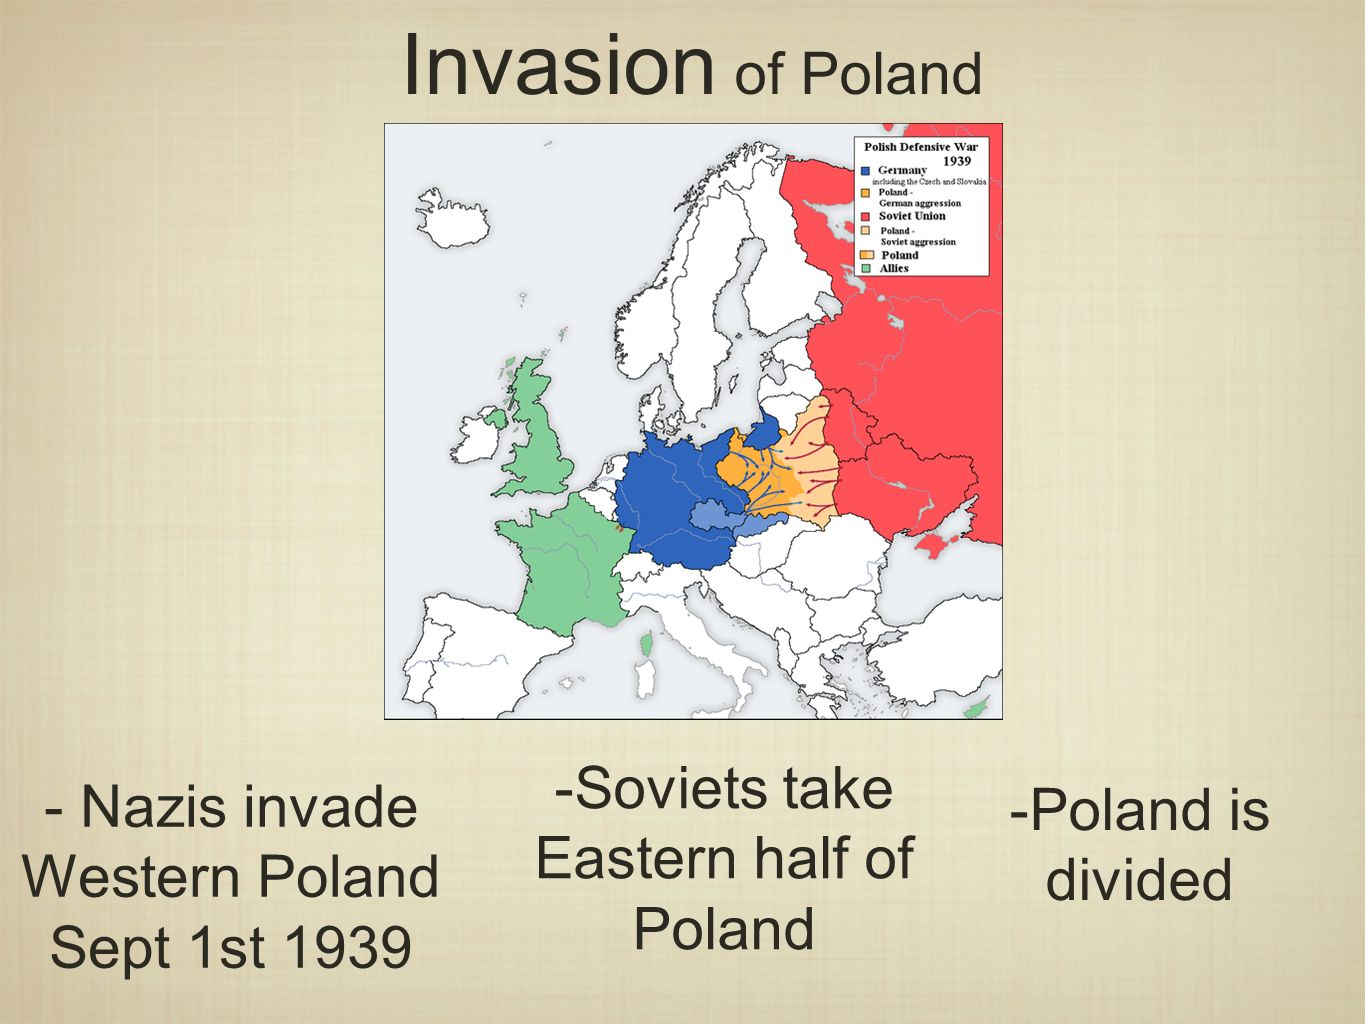 Invasion of Poland - Nazis invade Western Poland Sept 1st Soviets take Eastern half of Poland -Poland is divided